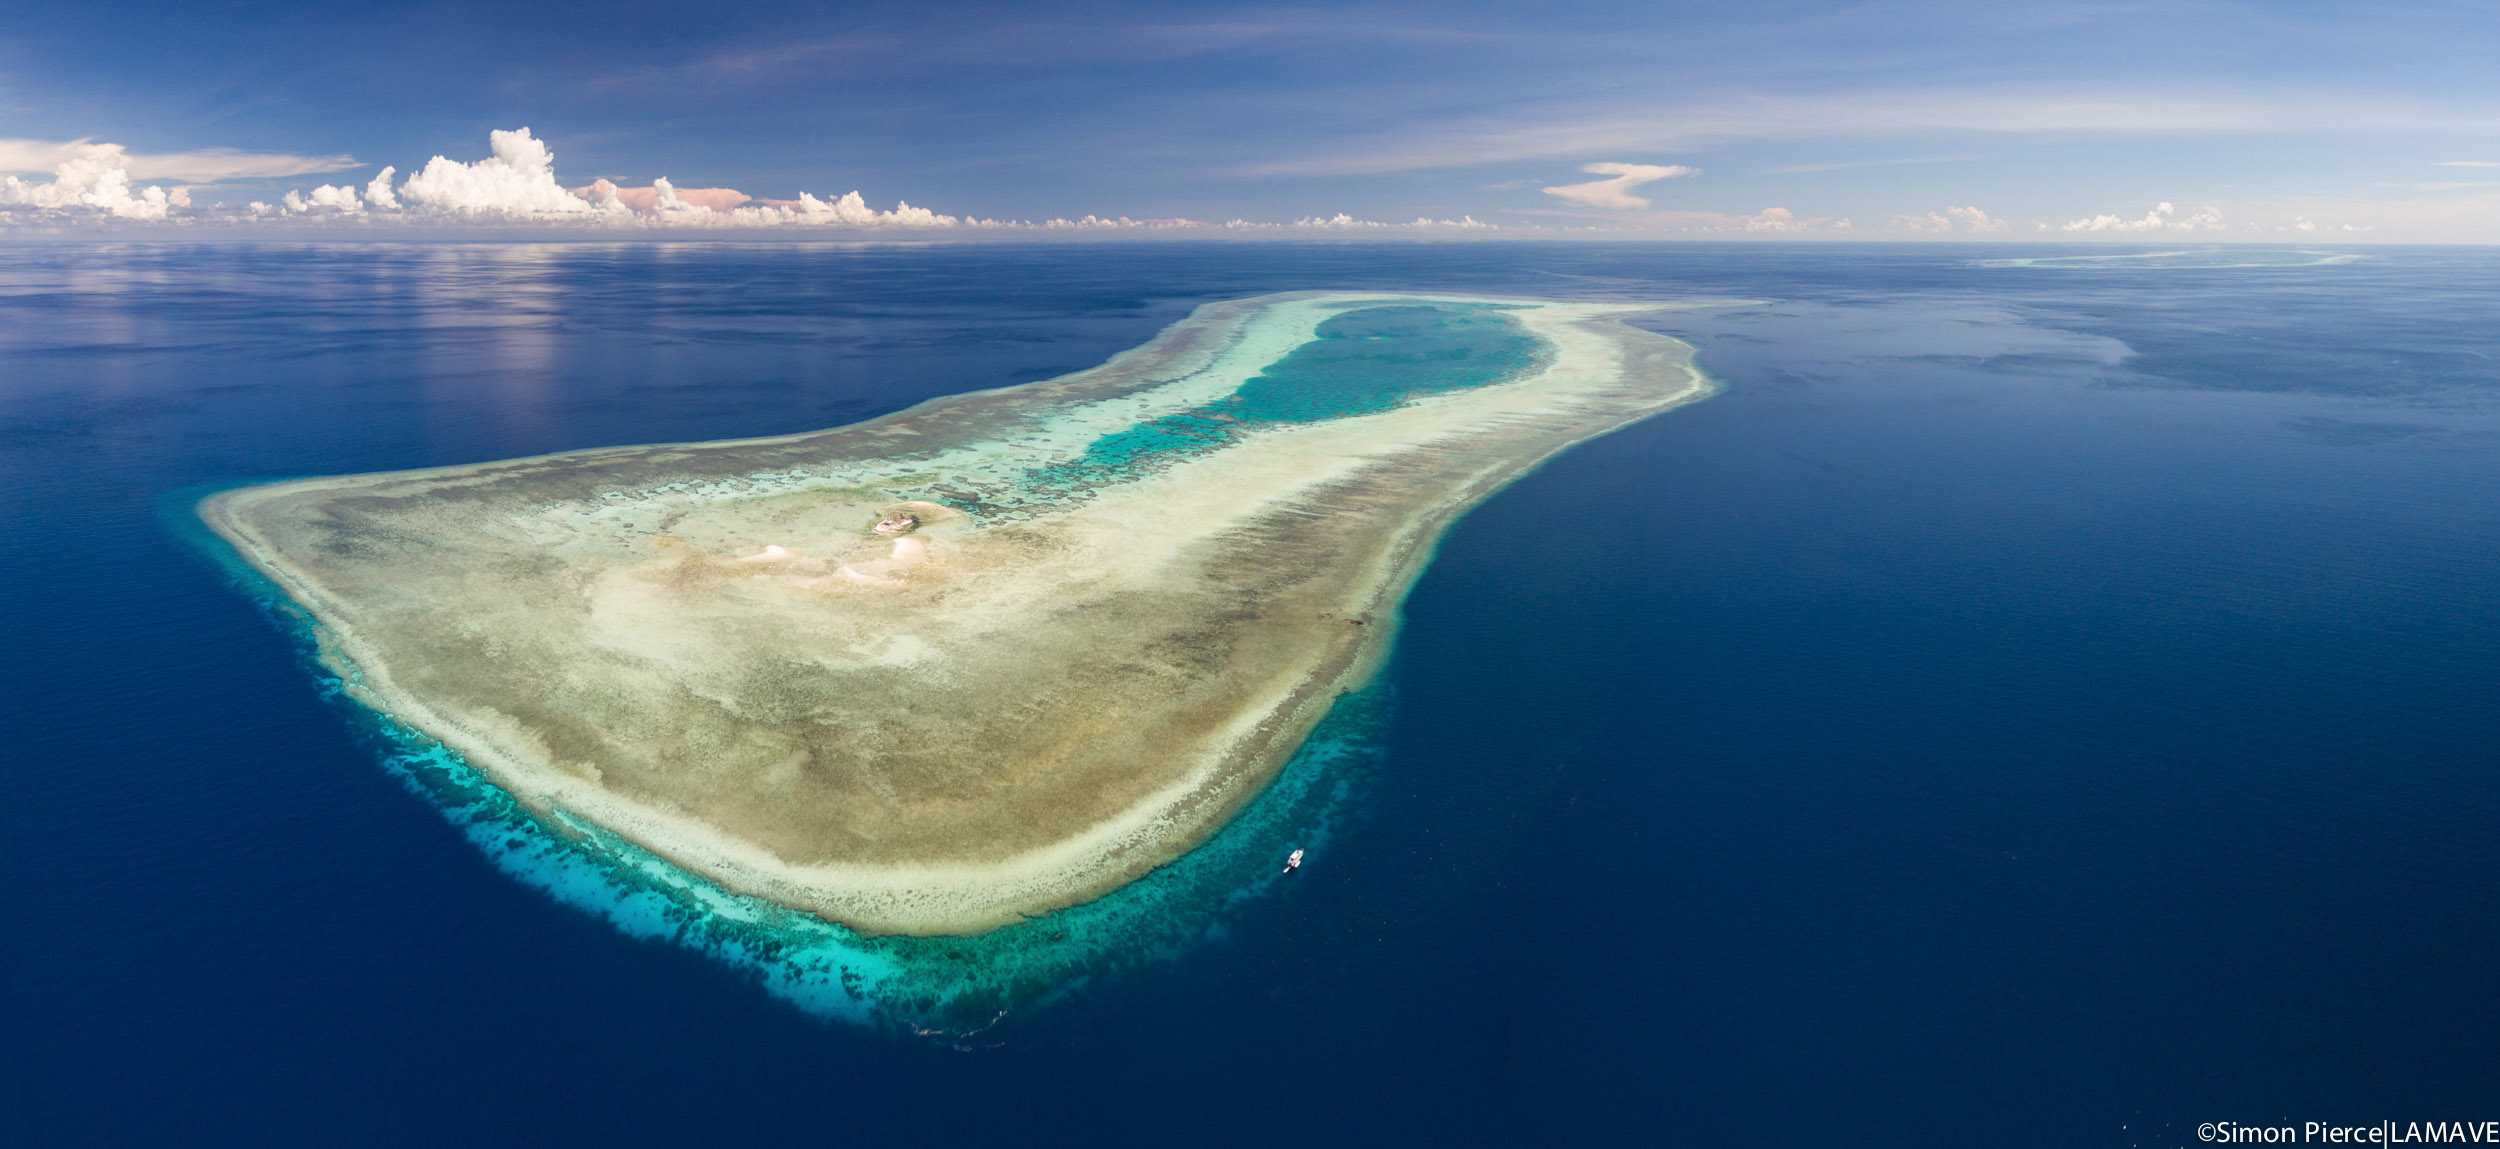 Photo 6. An aerial shot of the South Atoll in TRNP, which is located approximately 170 km east of Puerto Princesa. Credit: Simon Pierce|LAMAVE.